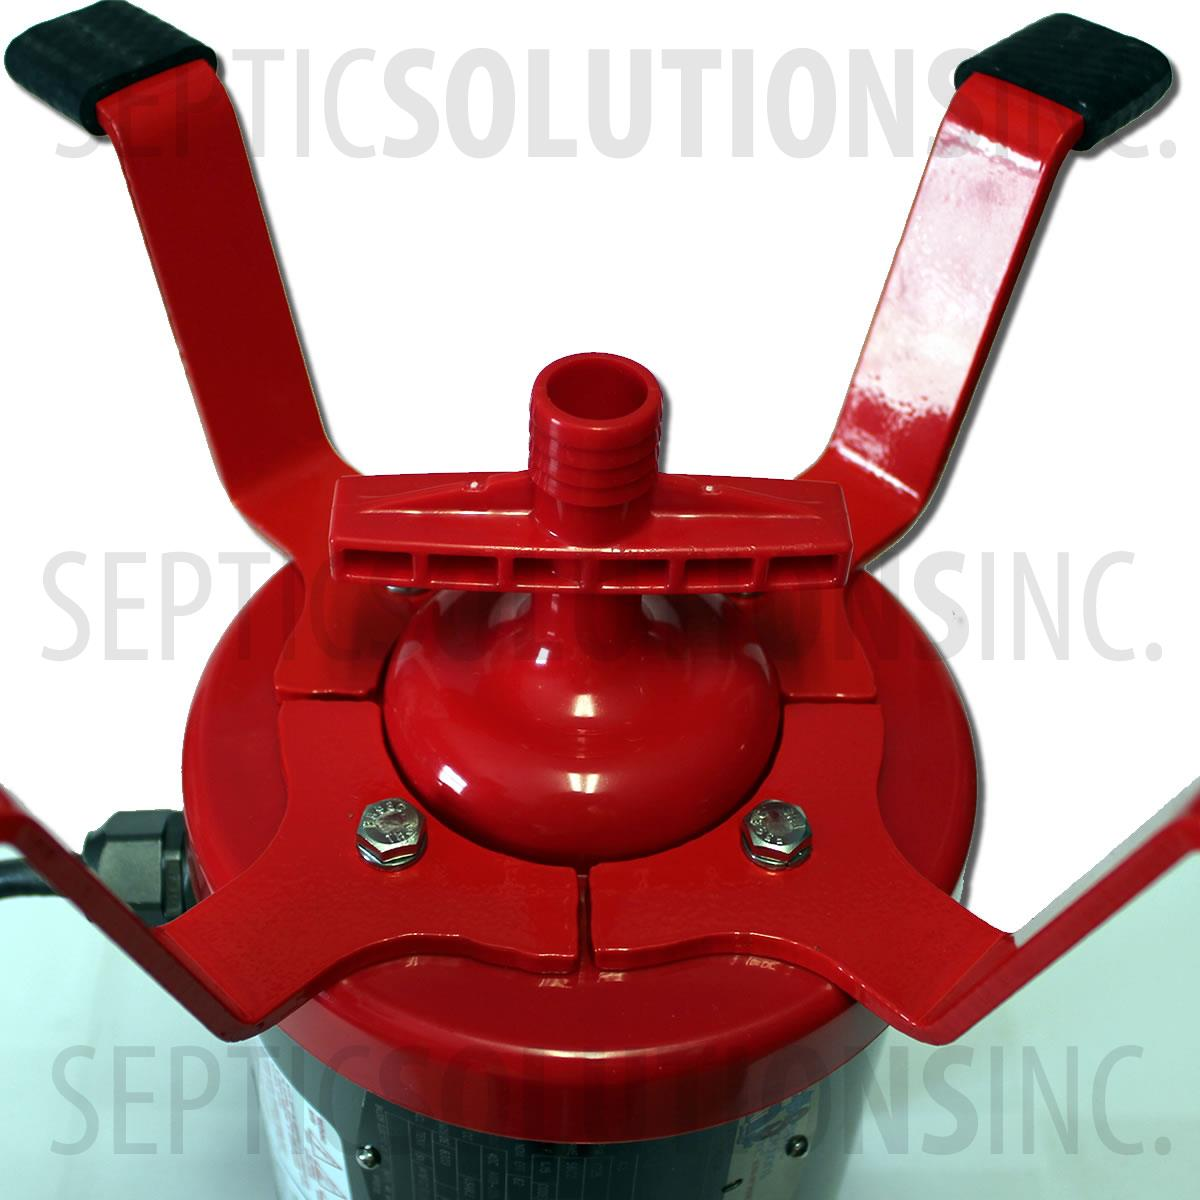 Ultra Air Model 735 Red Septic Aerator Jet Aerator